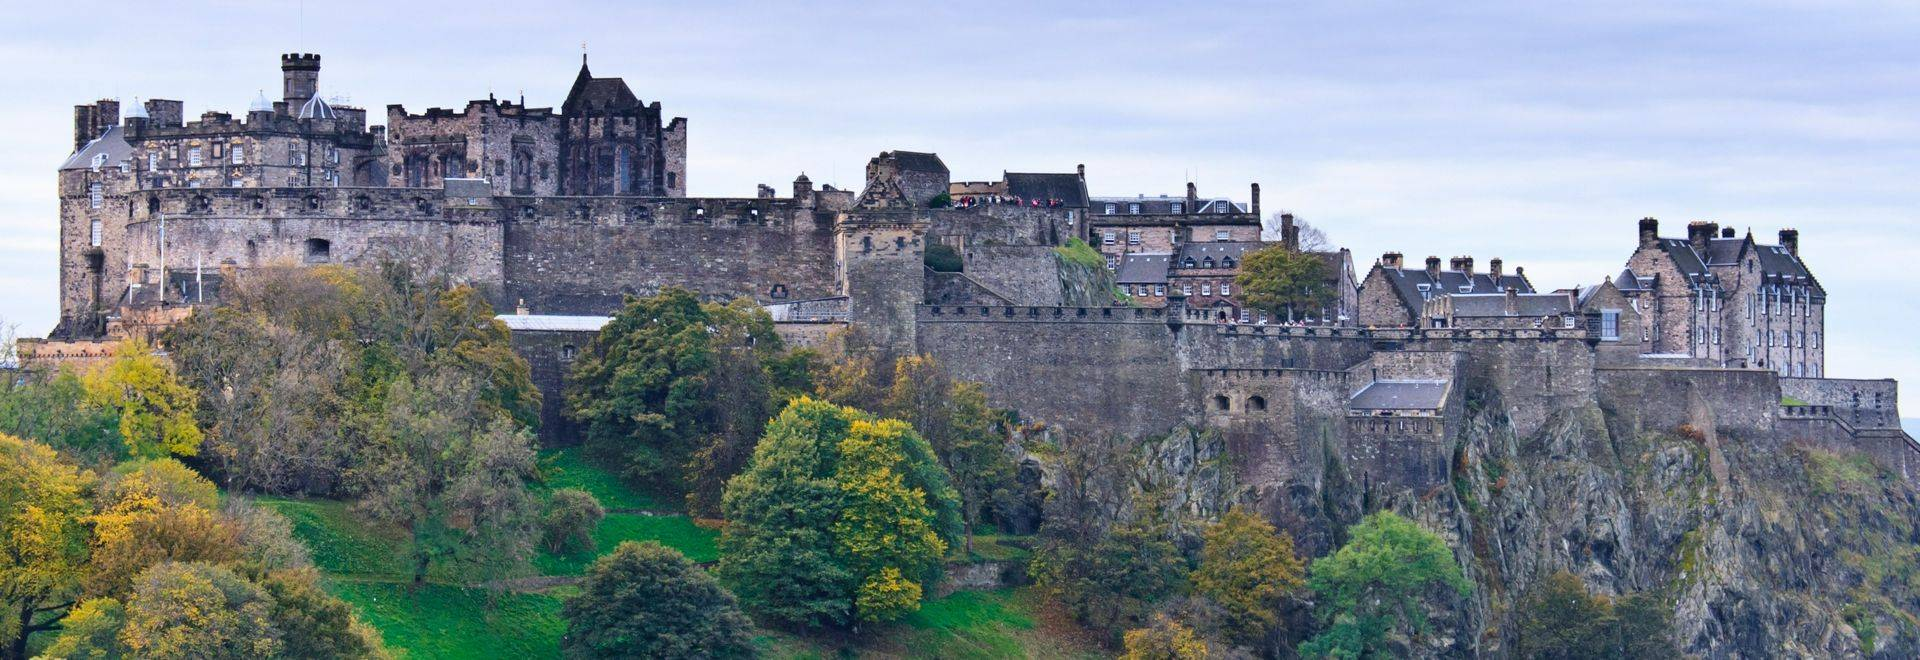 Edinburgh Castle Dreamstime L 23225732